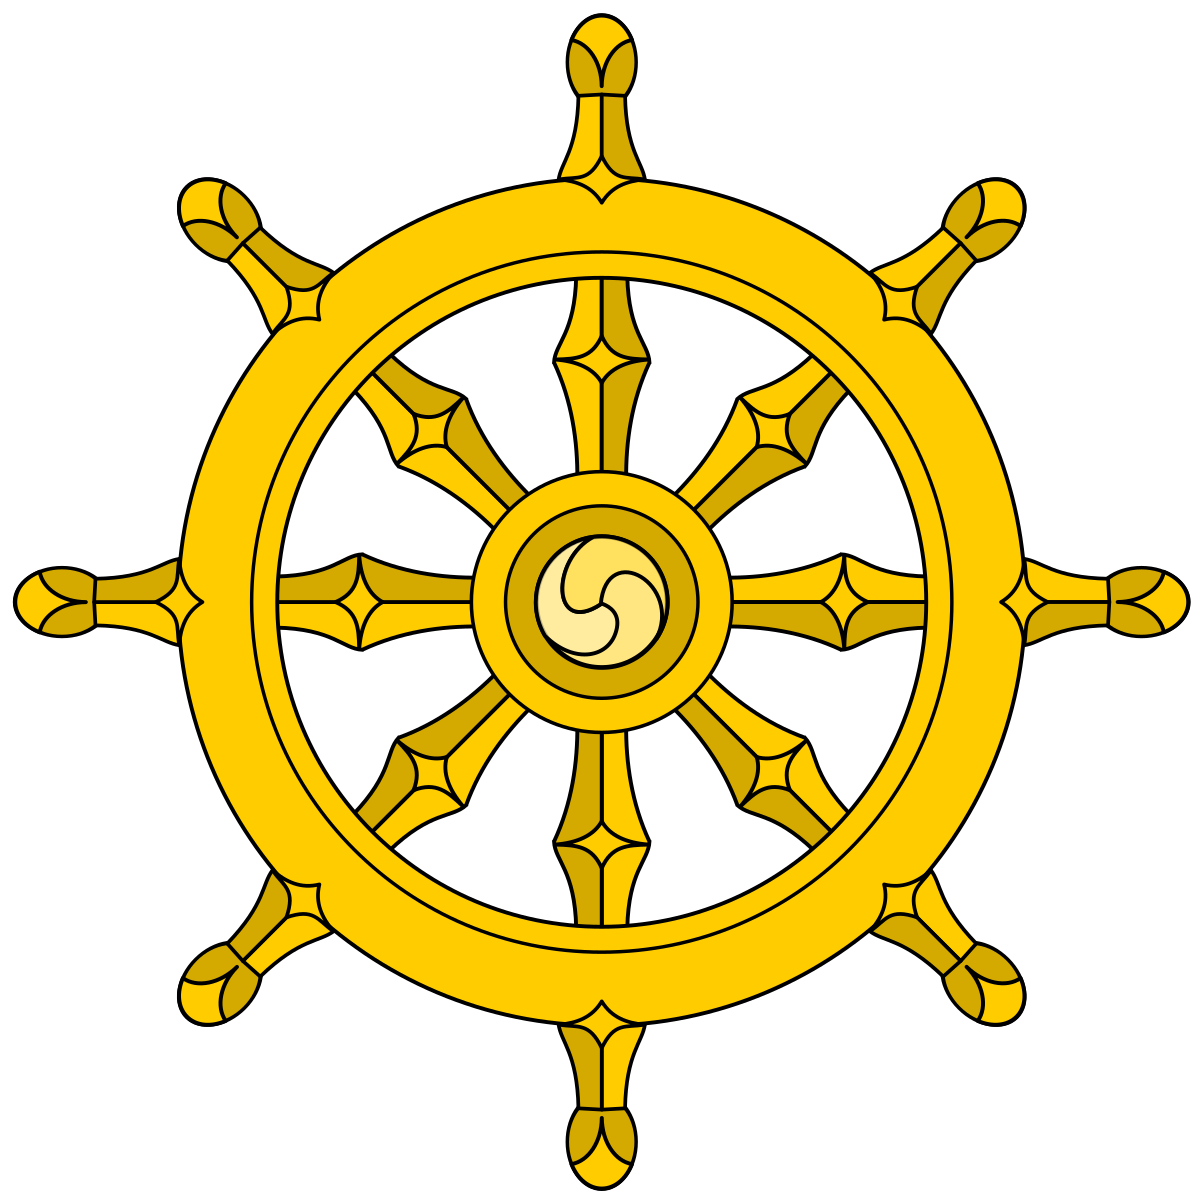 eight spoked dharmachakr represent the Noble Eightfold Path of Buddhism